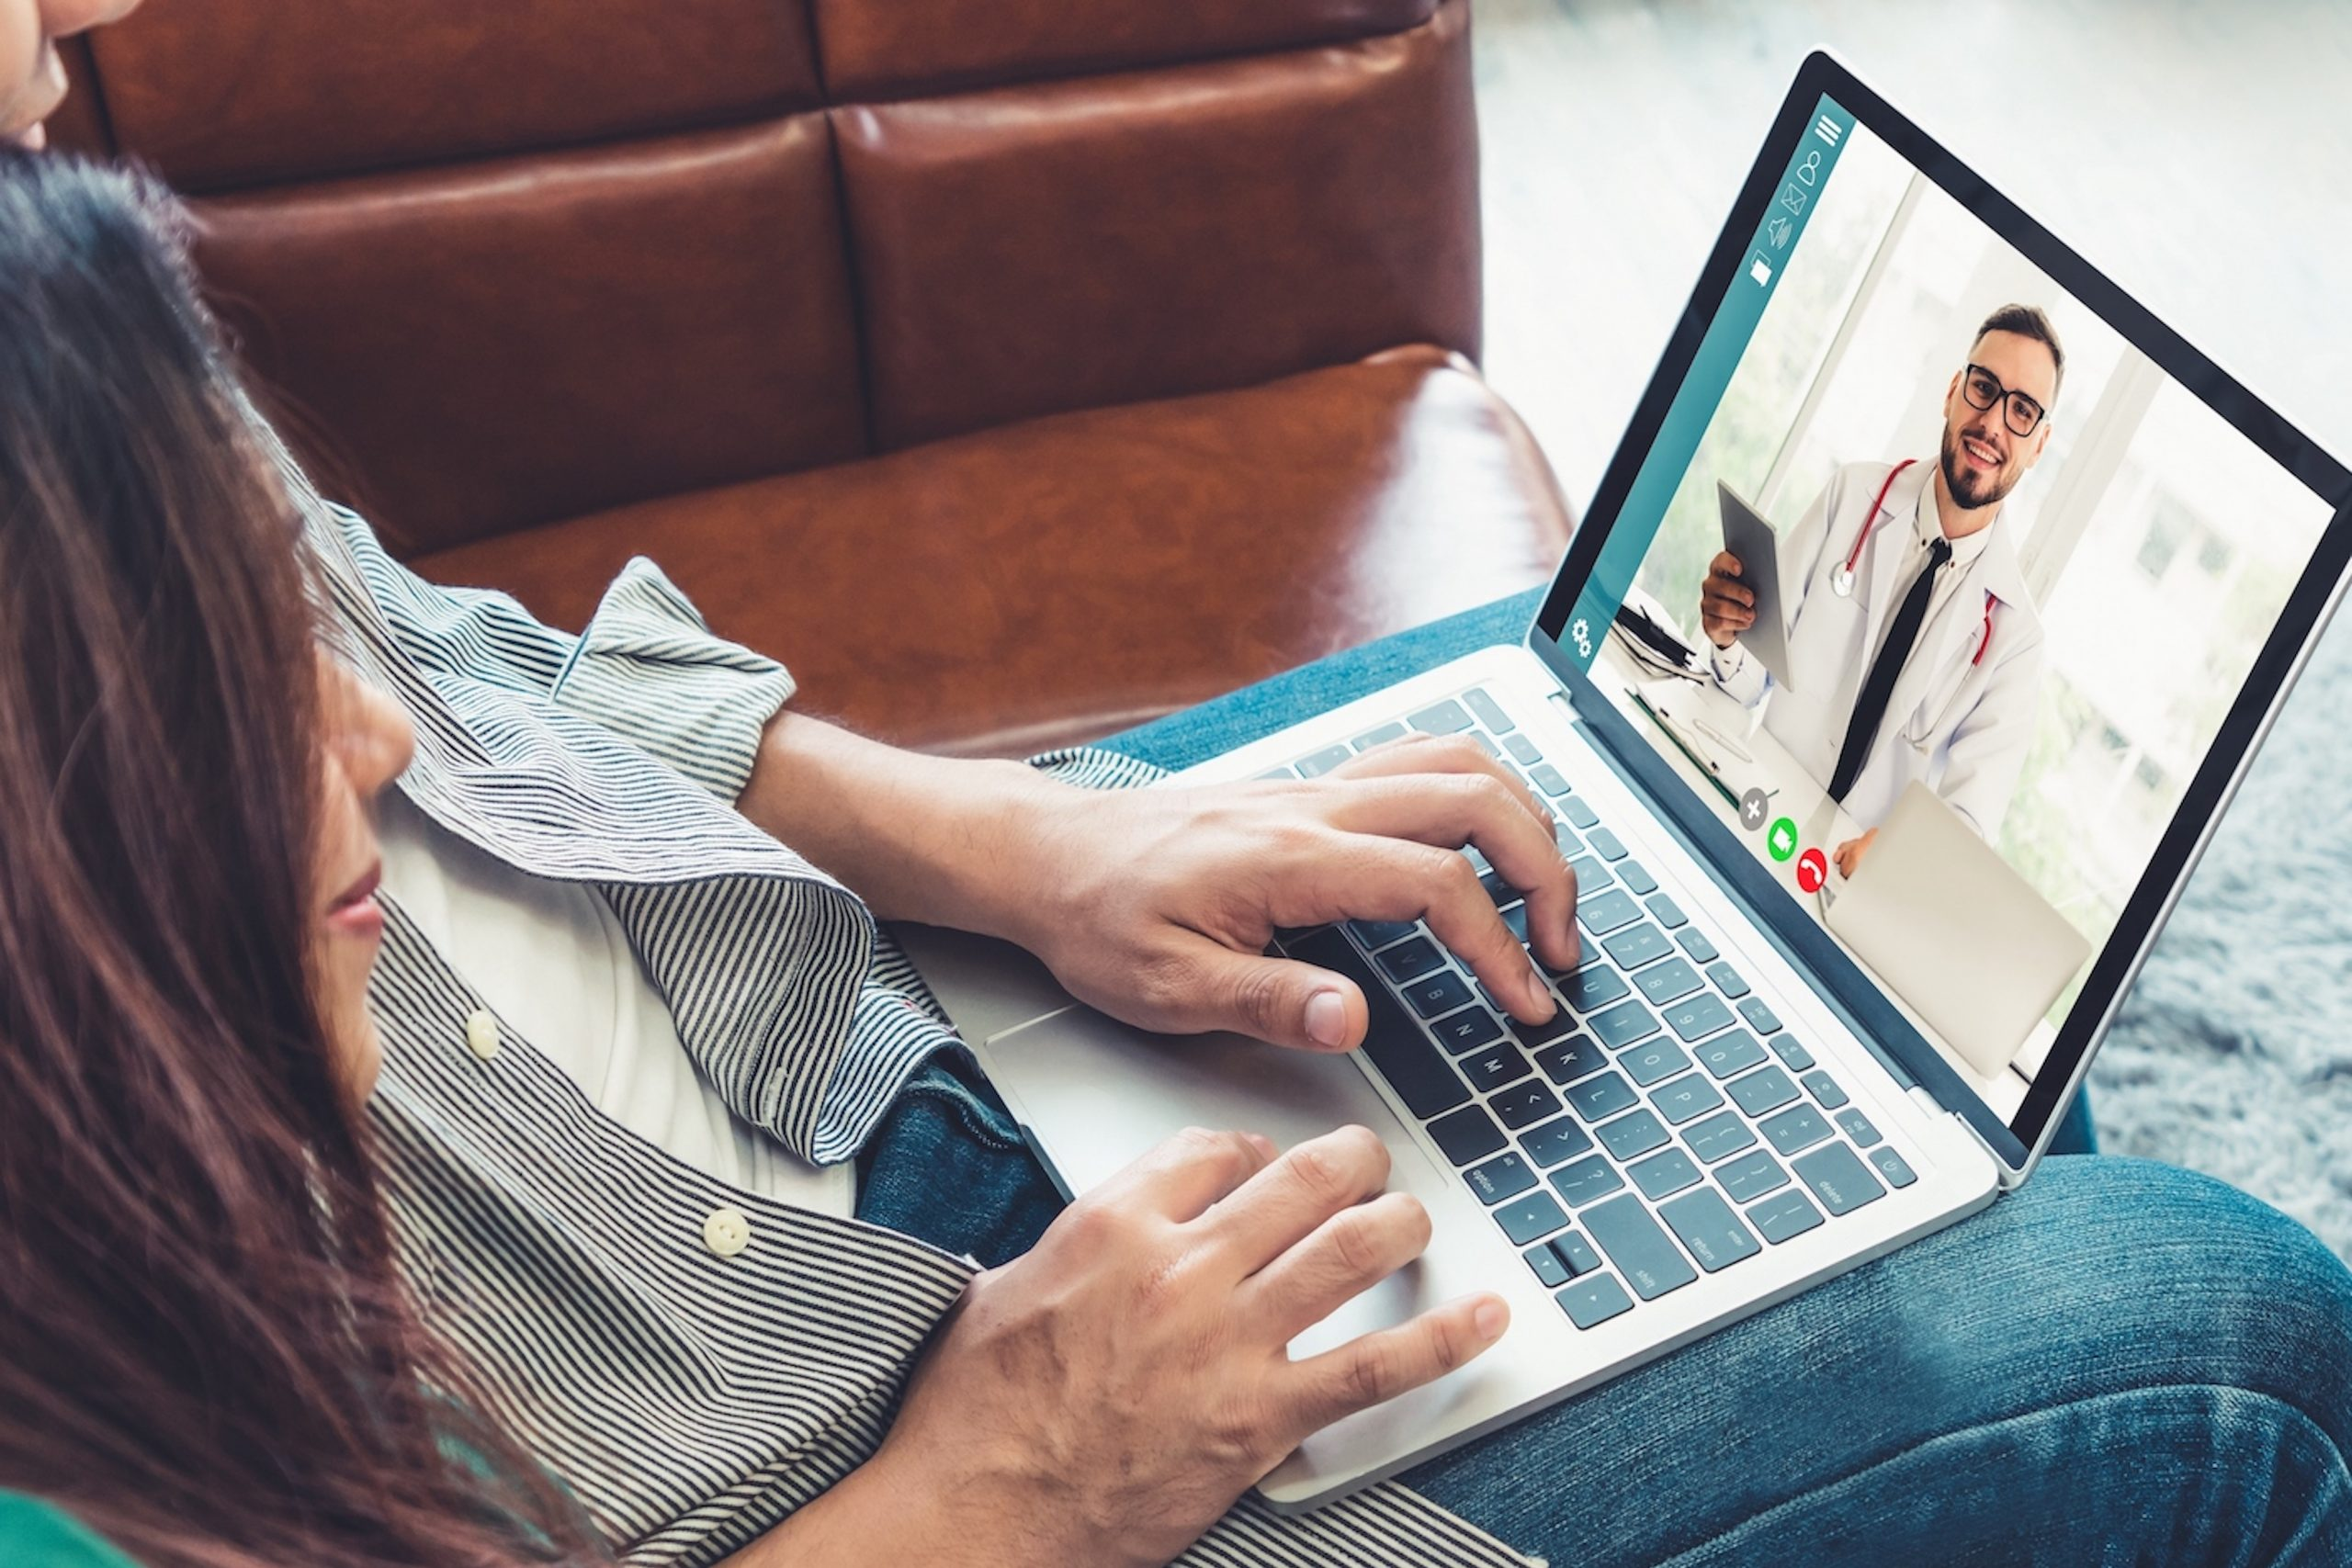 Doctor telemedicine service online video for virtual patient health medical chat . Remote doctor healthcare consultant from home using online mobile device connect to internet for live video call .